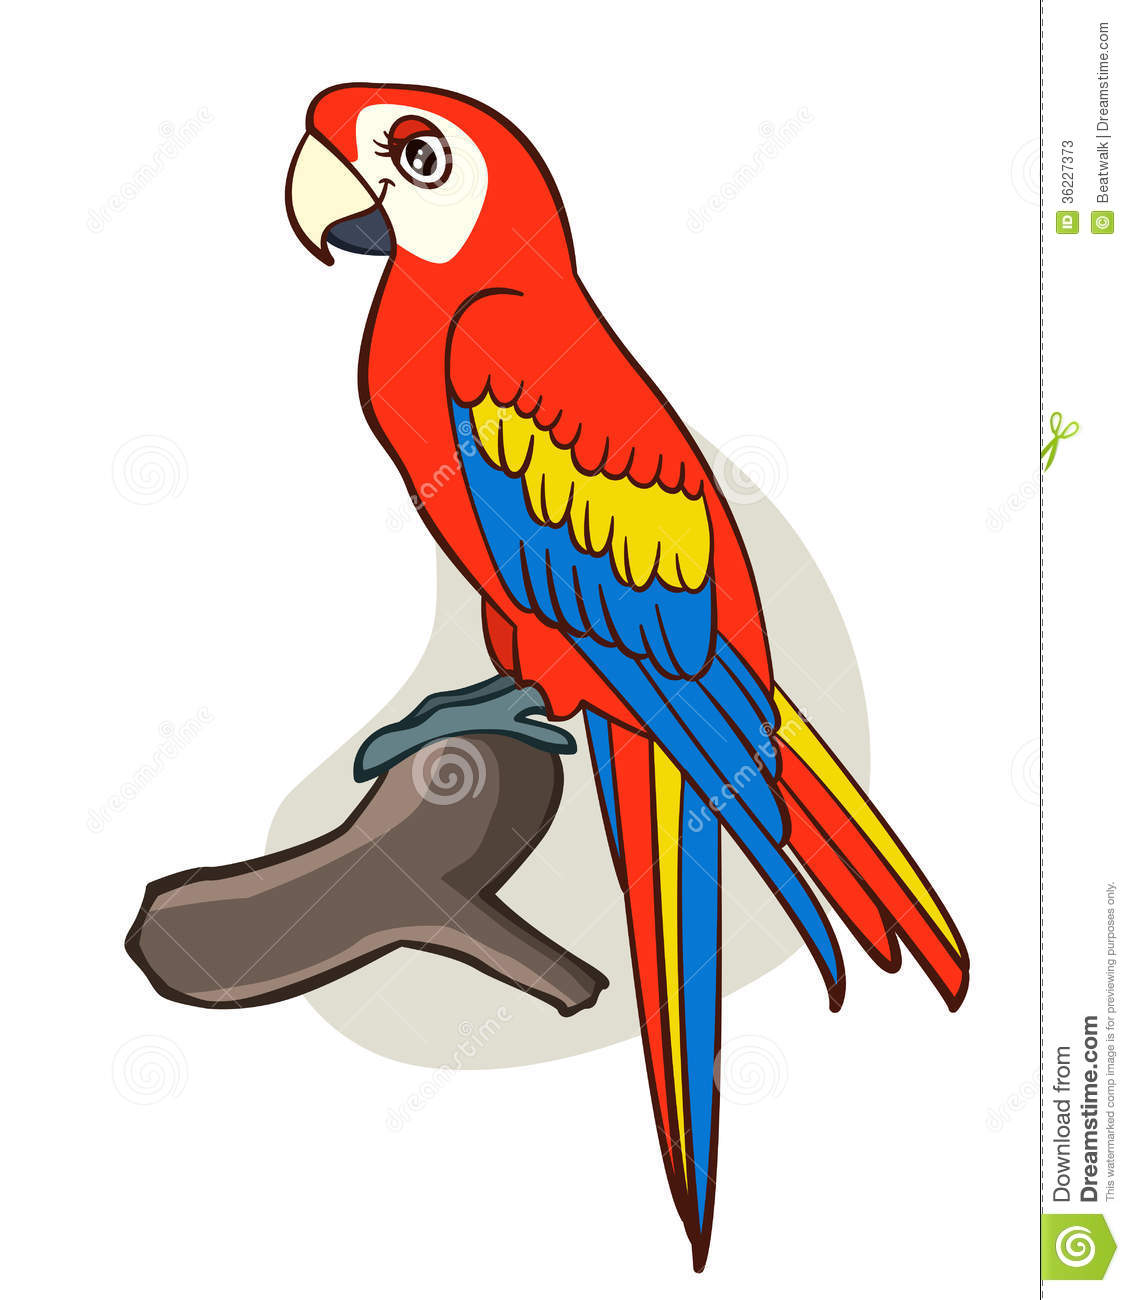 Cute Parrot Clipart Cartoon Parrot Cute -Cute Parrot Clipart Cartoon Parrot Cute Isolated White Background-13